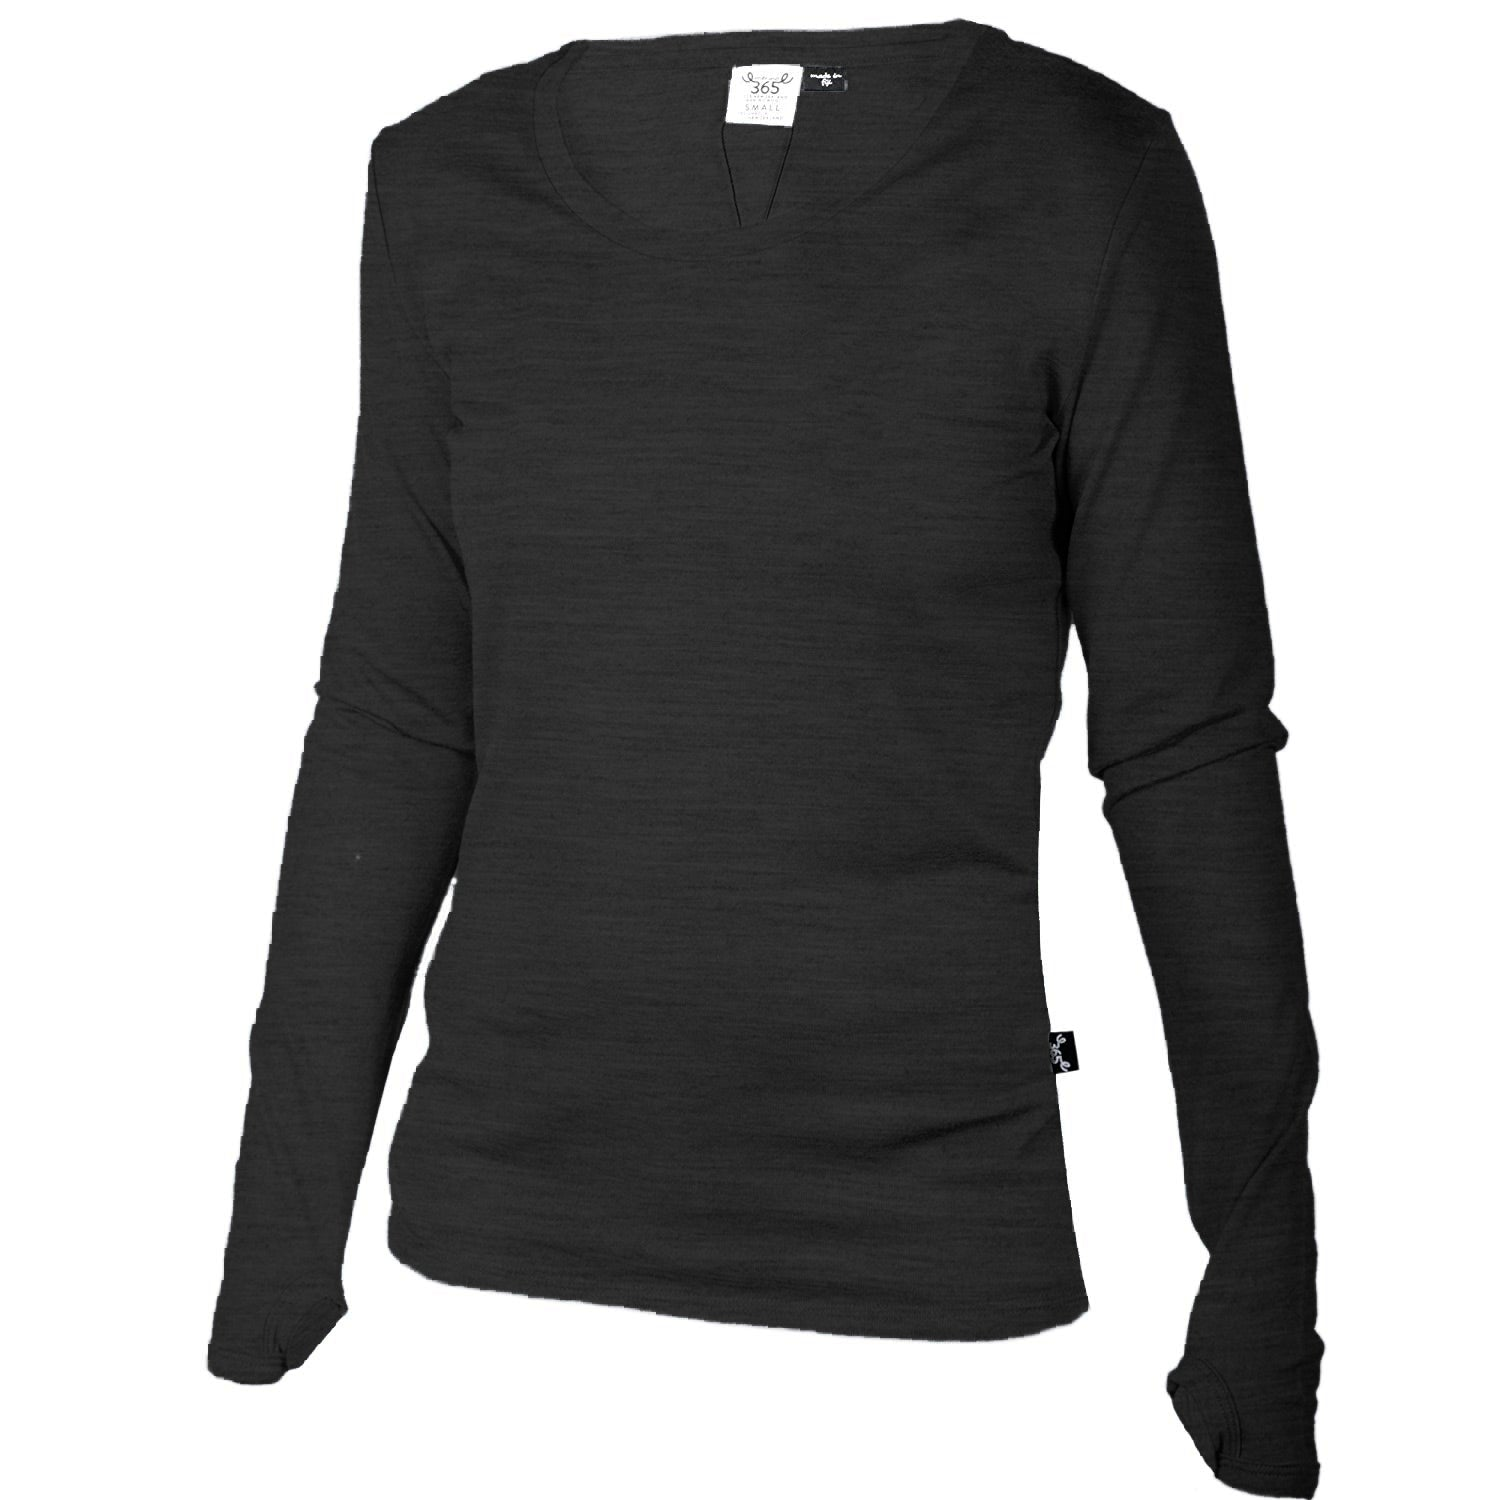 Merino 365 Women's OG Light Long Sleeve Top, Black Heather